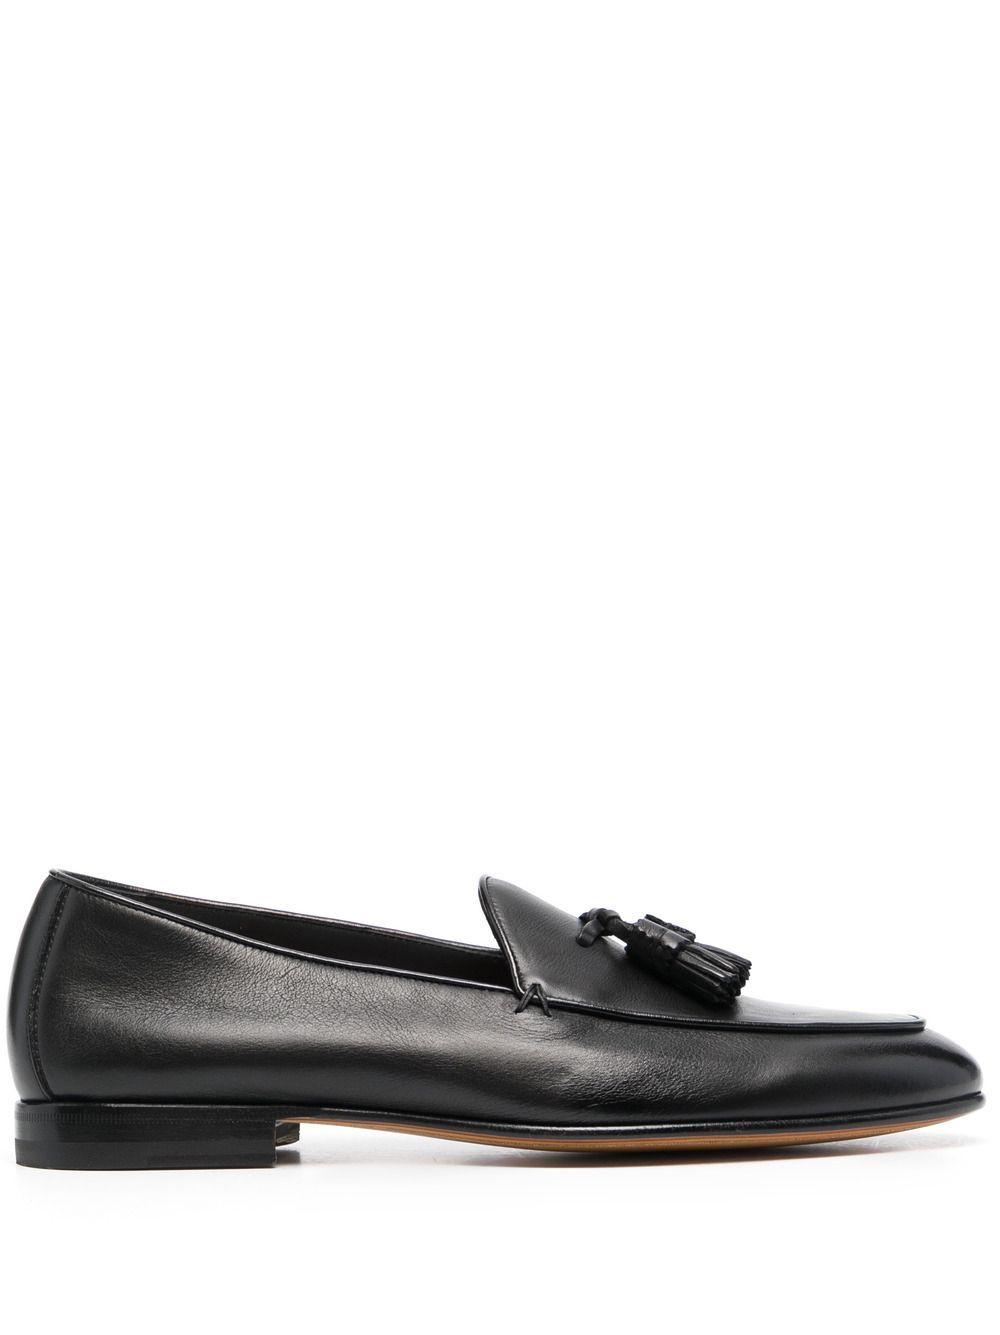 Santoni SANTONI MEN'S MCNC17510LA3SGTHN01 BLACK LEATHER LOAFERS